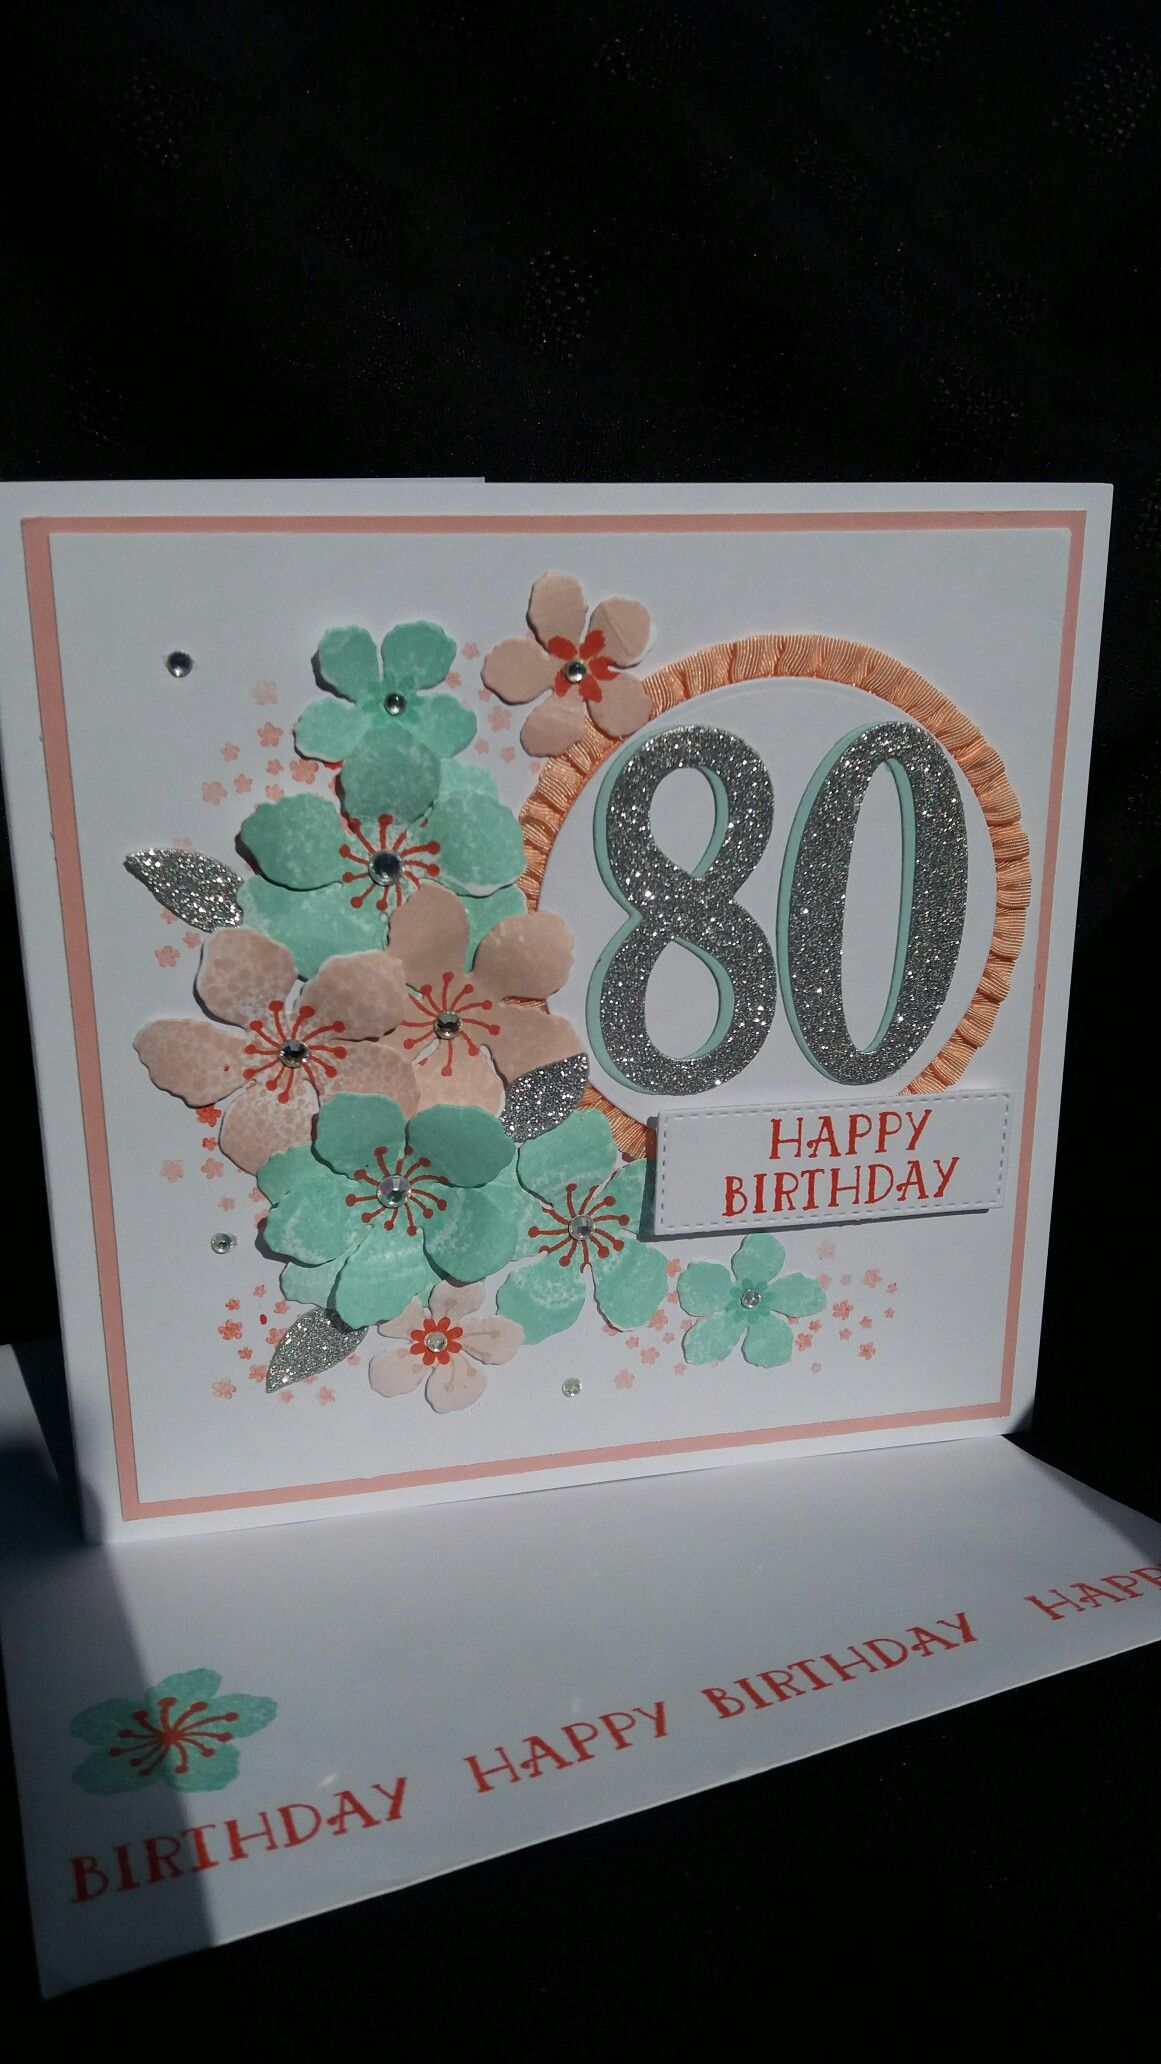 Stampin Up Botanical Blooms Set And Number Of Years Set Used To Make 80th Birthday Card 80th Birthday Cards Birthday Cards 90th Birthday Cards